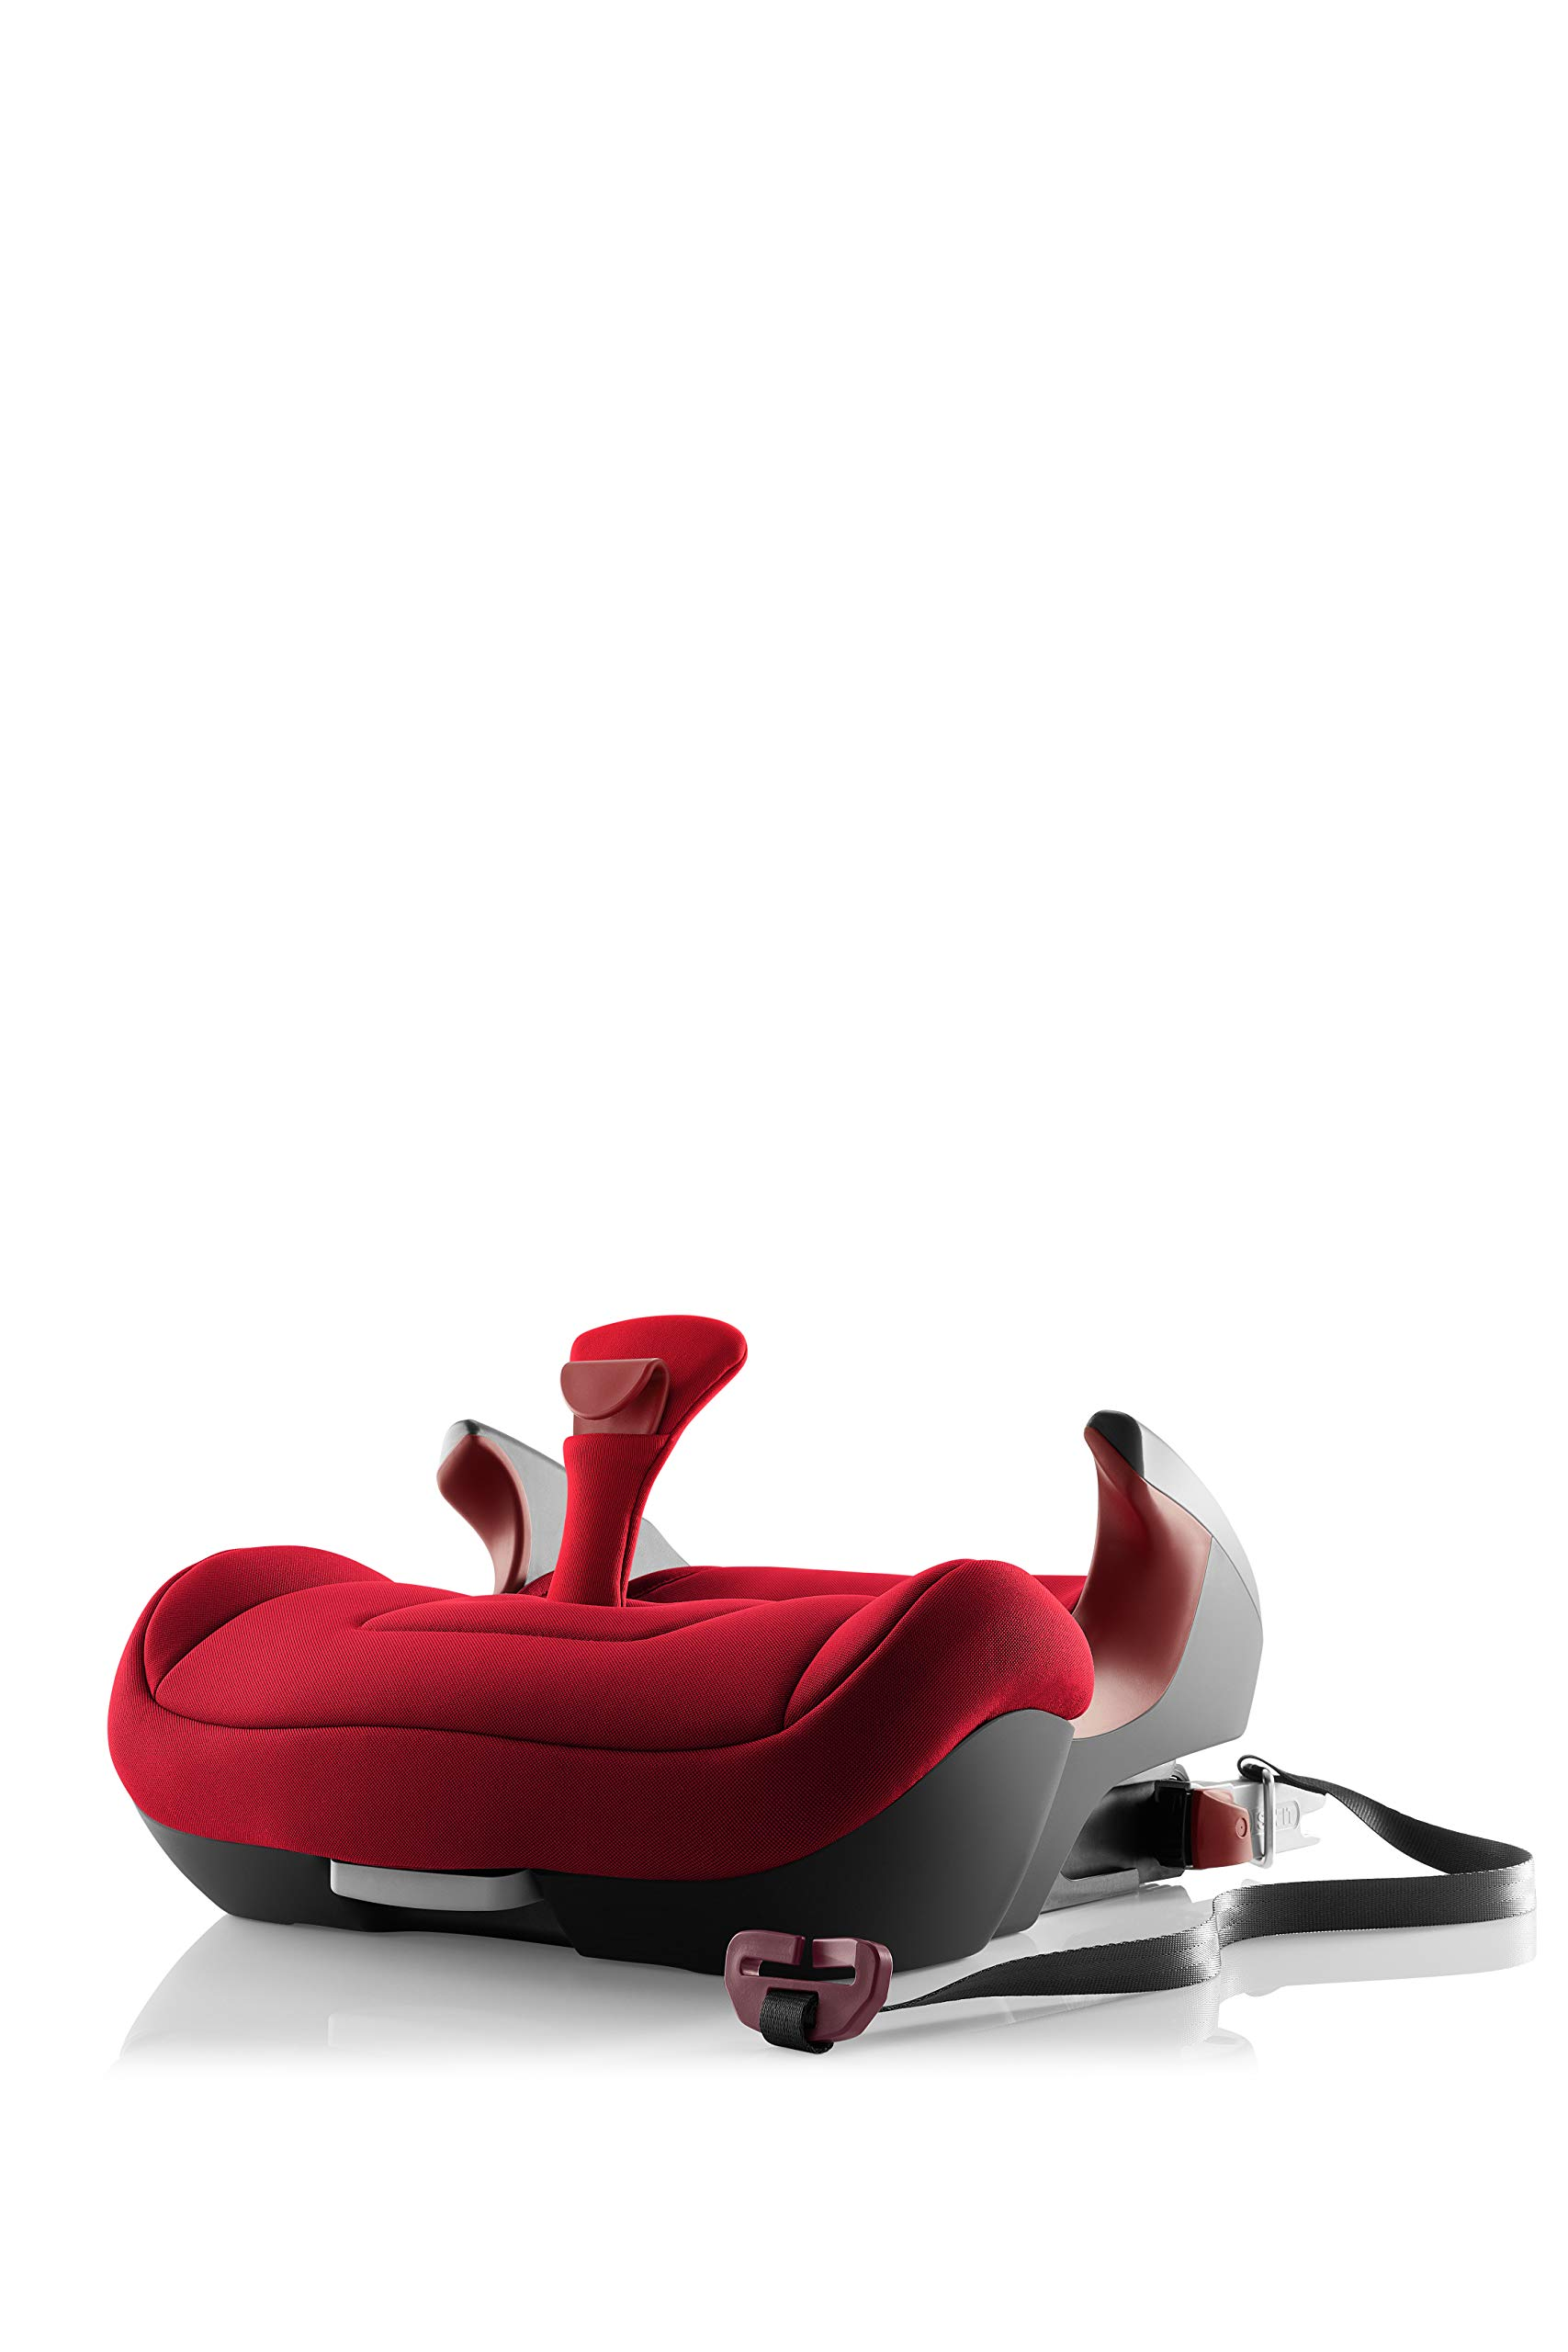 Britax Römer KIDFIX² S Group 2-3 (15-36kg) Car Seat - Fire Red Britax Römer Advanced side impact protection - sict offers superior protection to your child in the event of a side collision. reducing impact forces by minimising the distance between the car and the car seat. Secure guard - helps to protect your child's delicate abdominal area by adding an extra - a 4th - contact point to the 3-point seat belt. High back booster - protects your child in 3 ways: provides head to hip protection; belt guides provide correct positioning of the seat belt and the padded headrest provides safety and comfort. 5